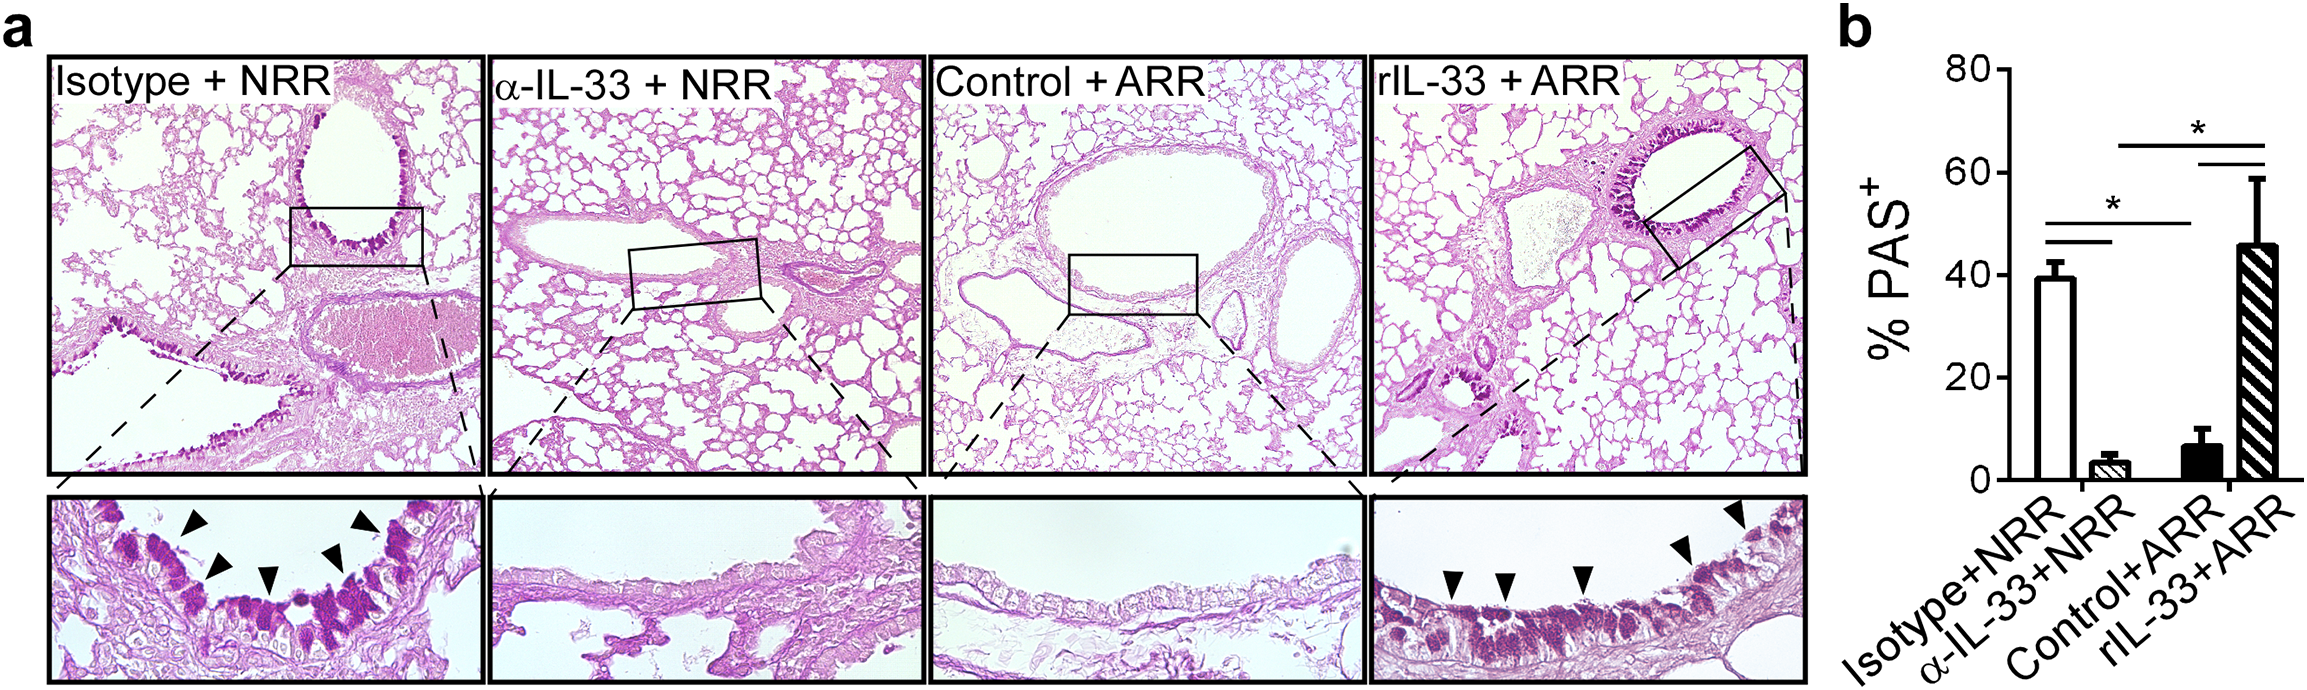 IL-33 levels during primary RSV infection determine disease severity after reinfection.